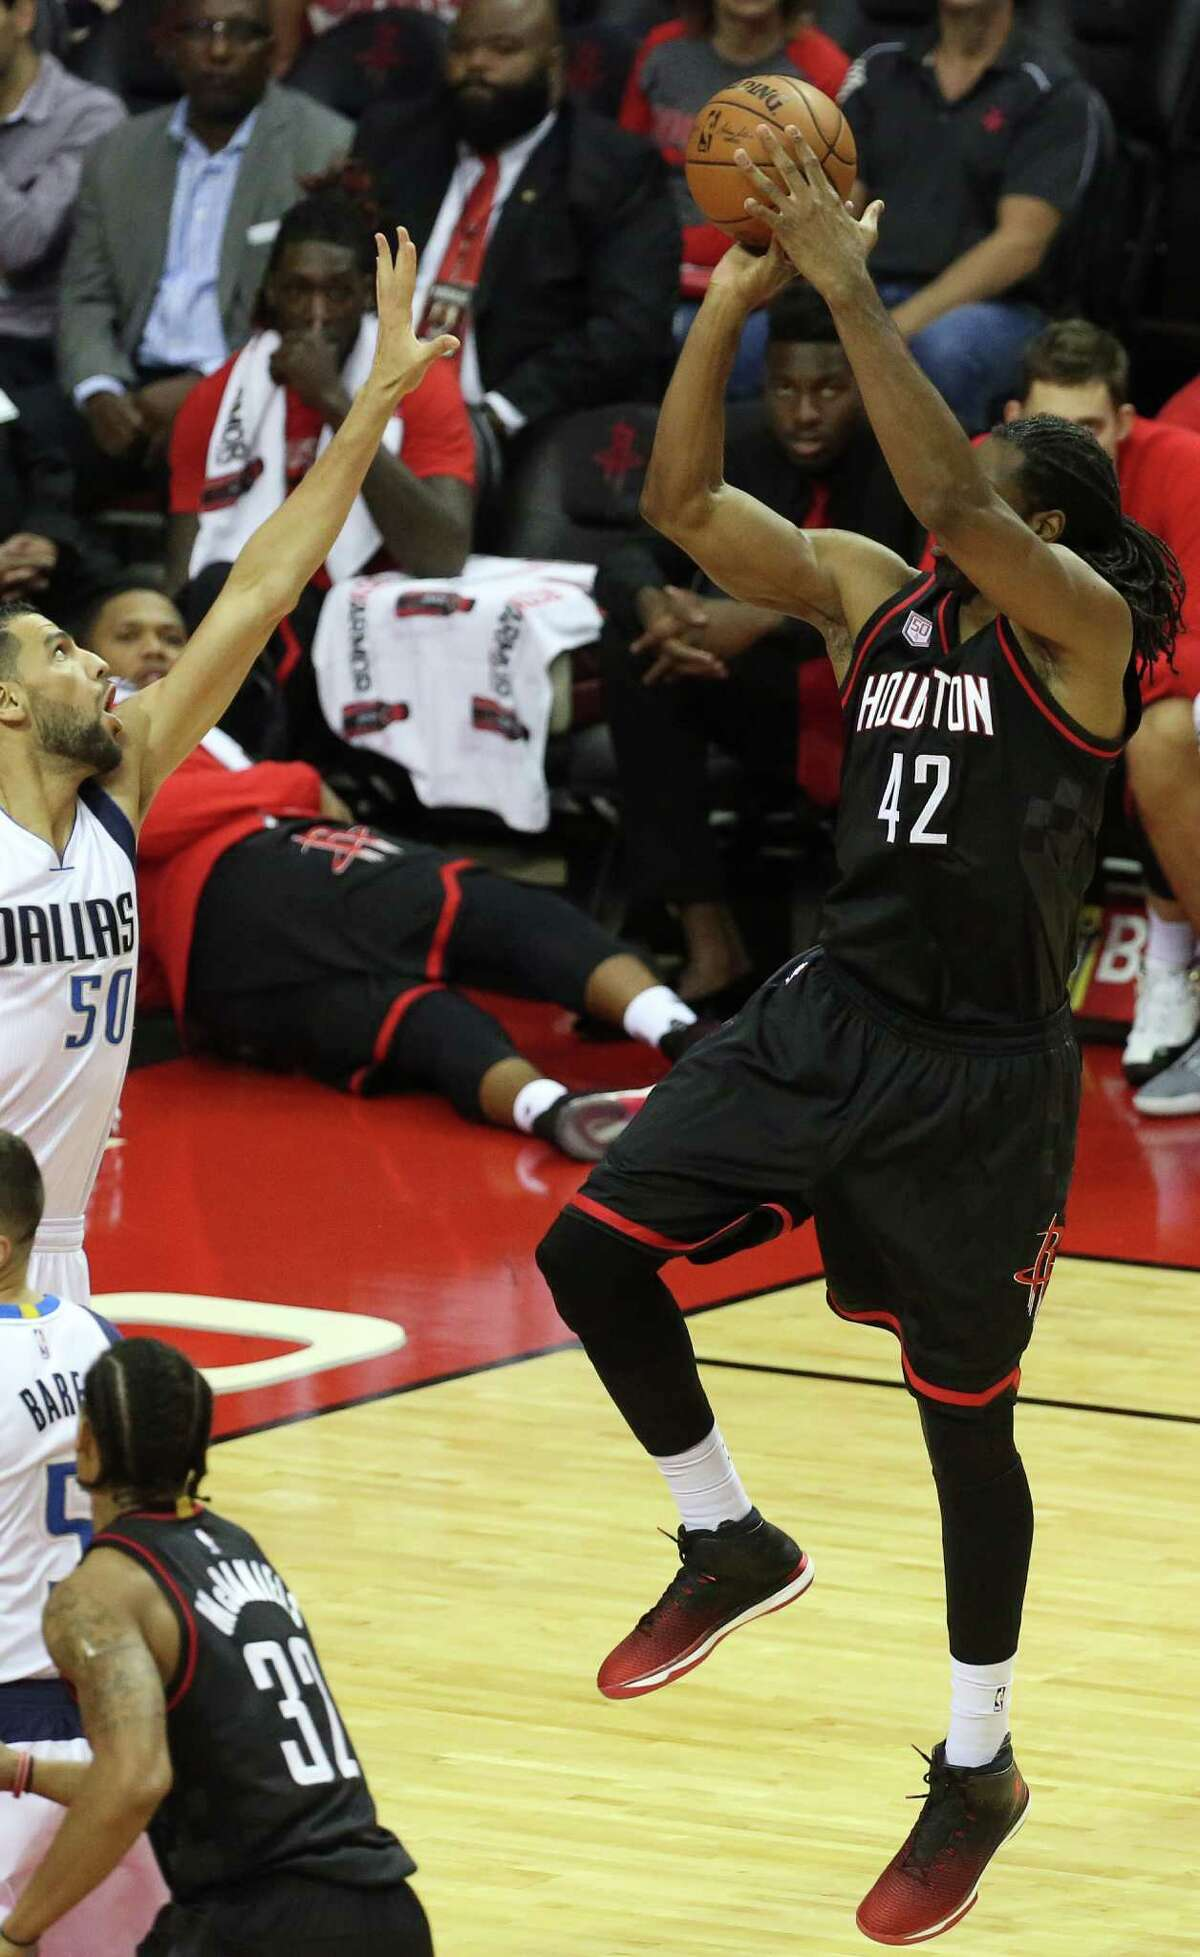 Houston Rockets center Nene Hilario (42) goes for the basket during the first half of the game at Toyota Center Sunday, Oct. 30, 2016, in Houston.